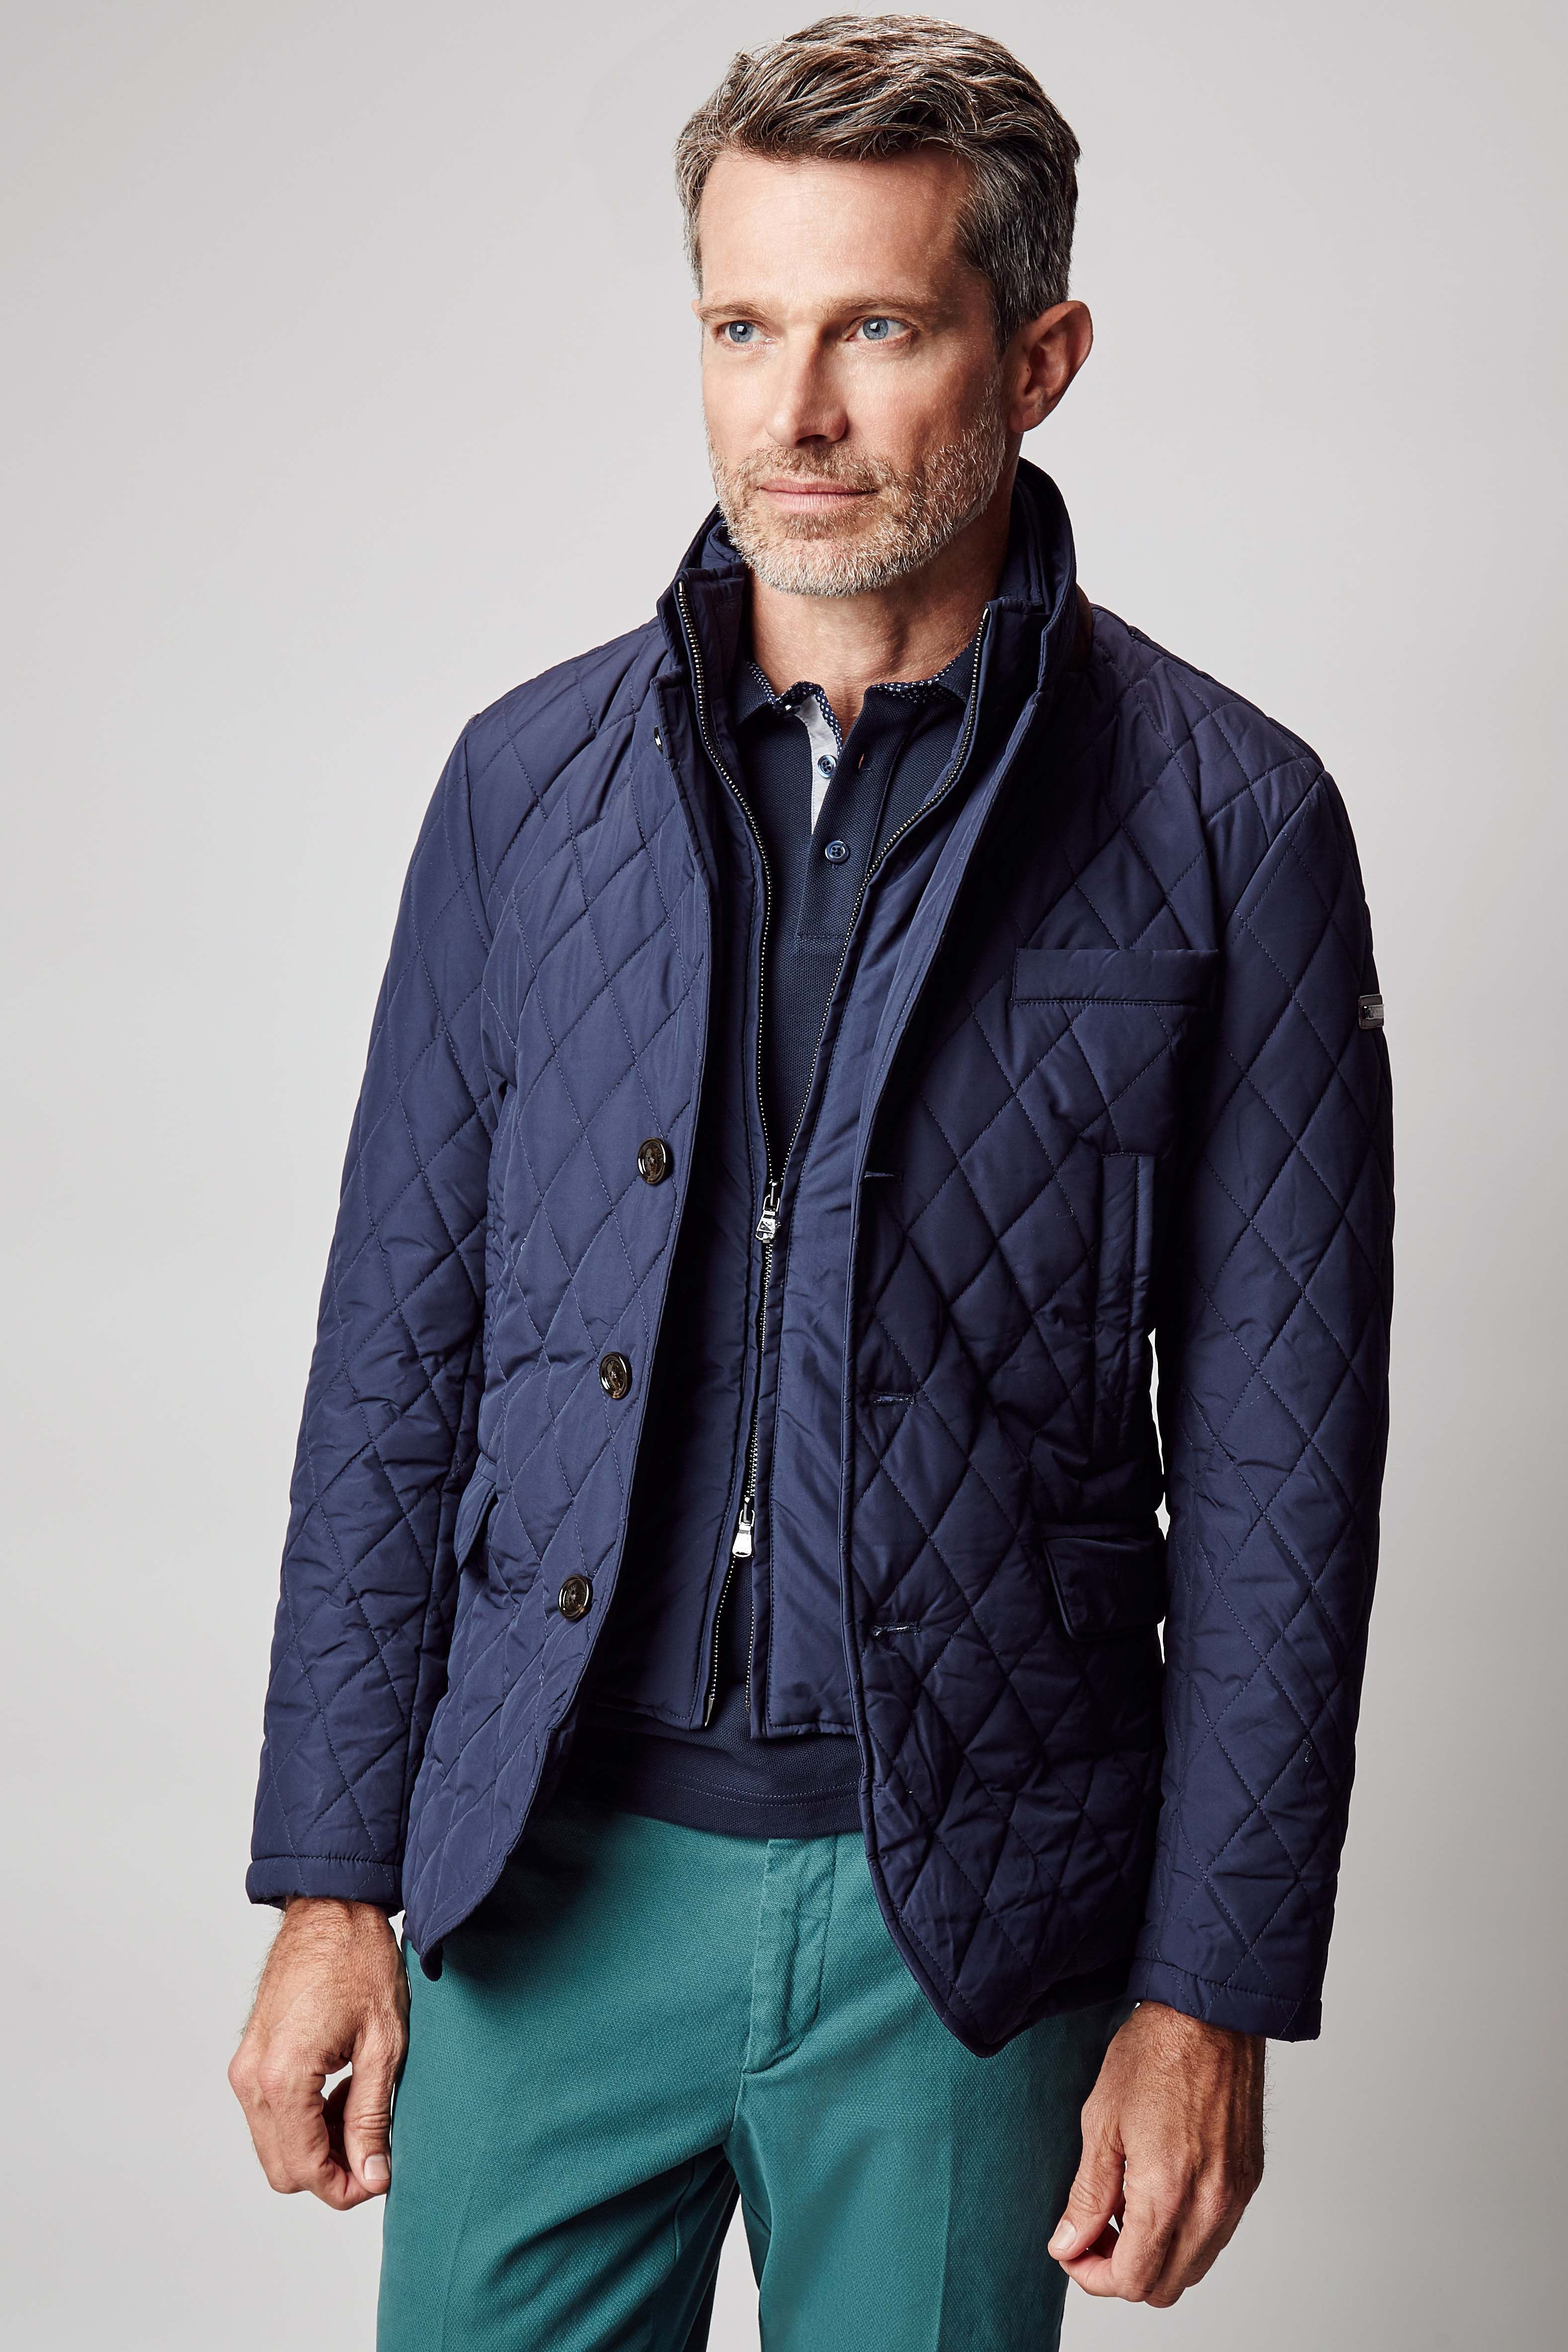 quilt shop the quilted olive vanca jacket wear winter blazer